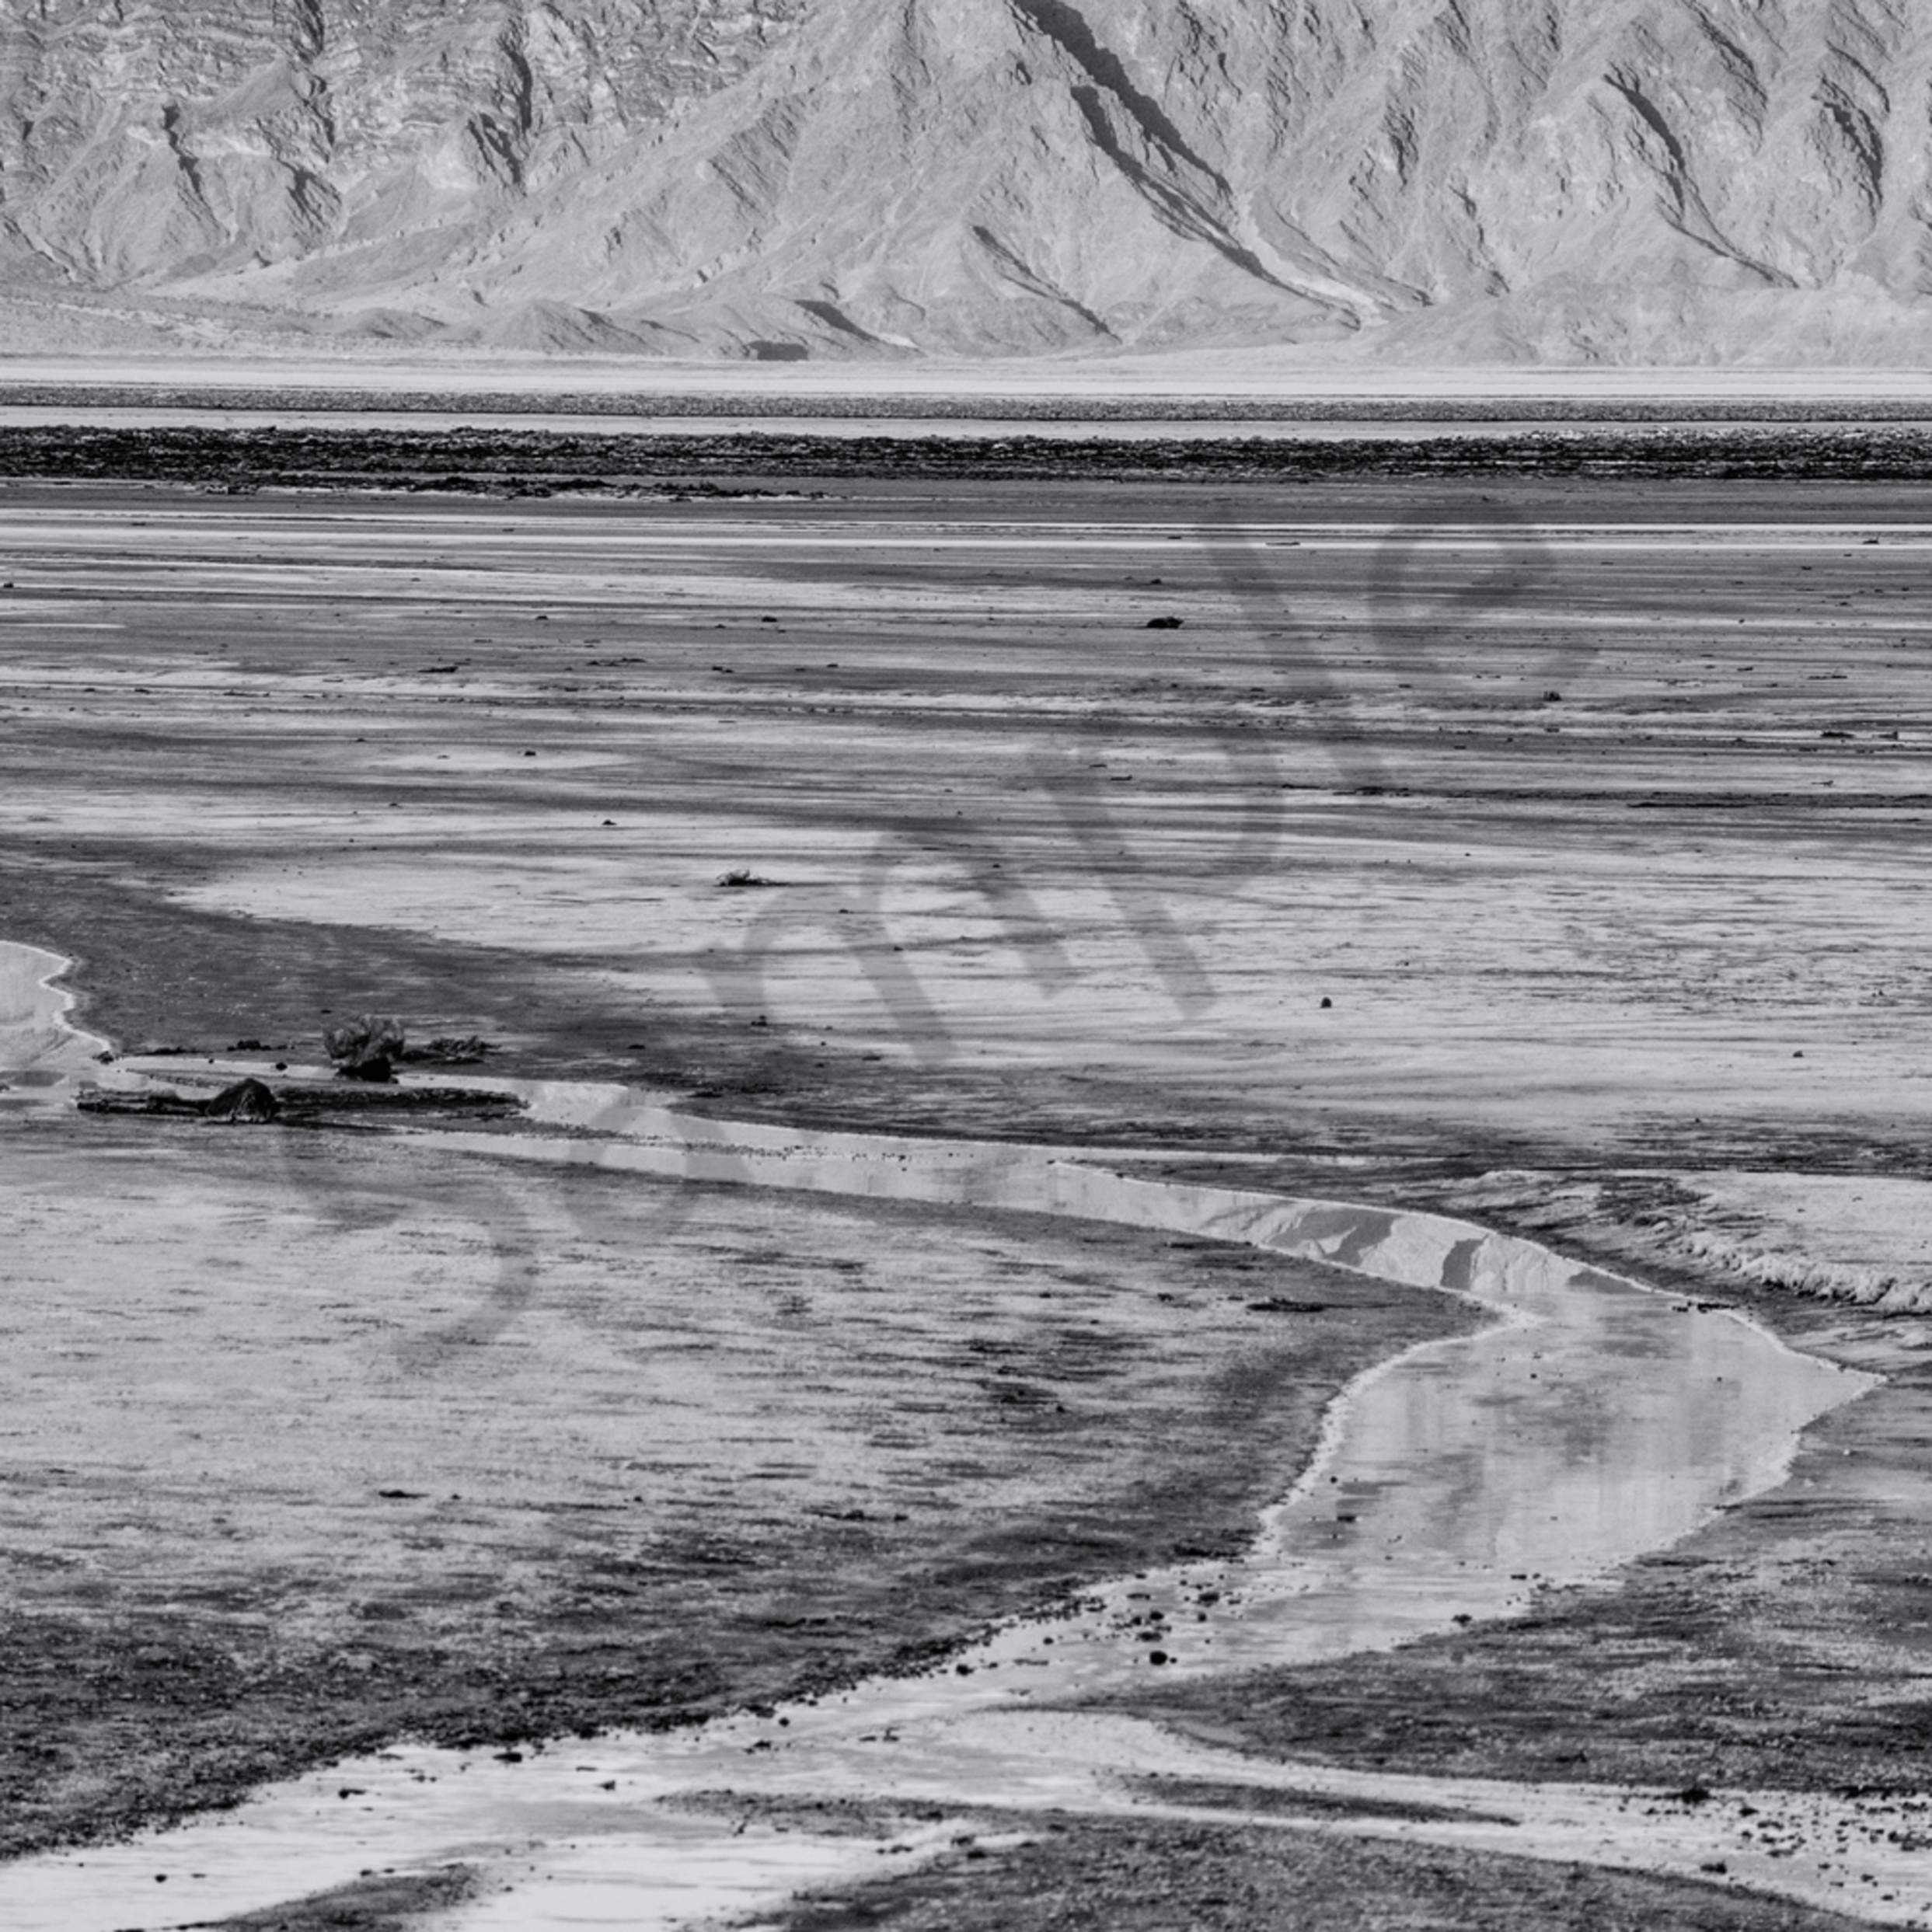 Badwater   death valley ca oeguus